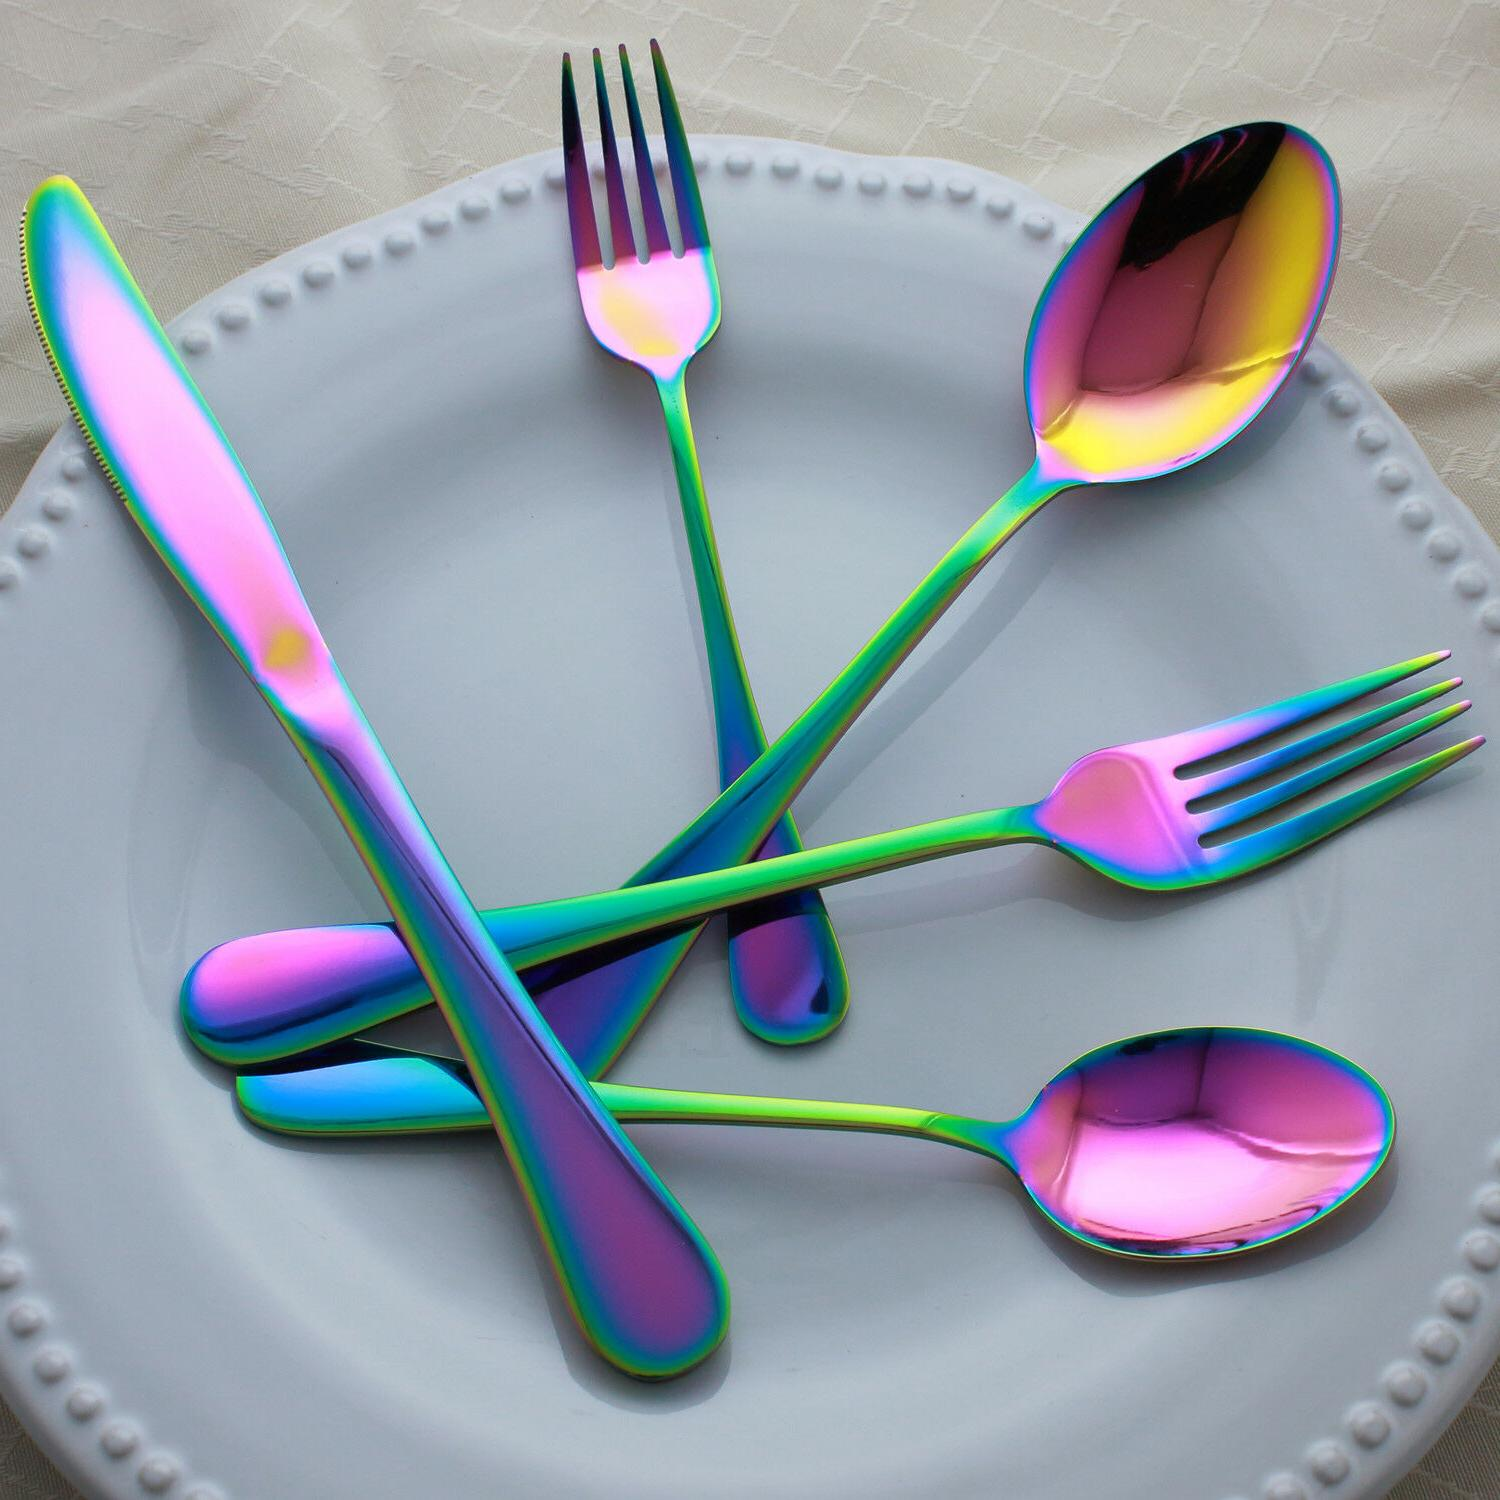 20-Piece Stainless Steel For